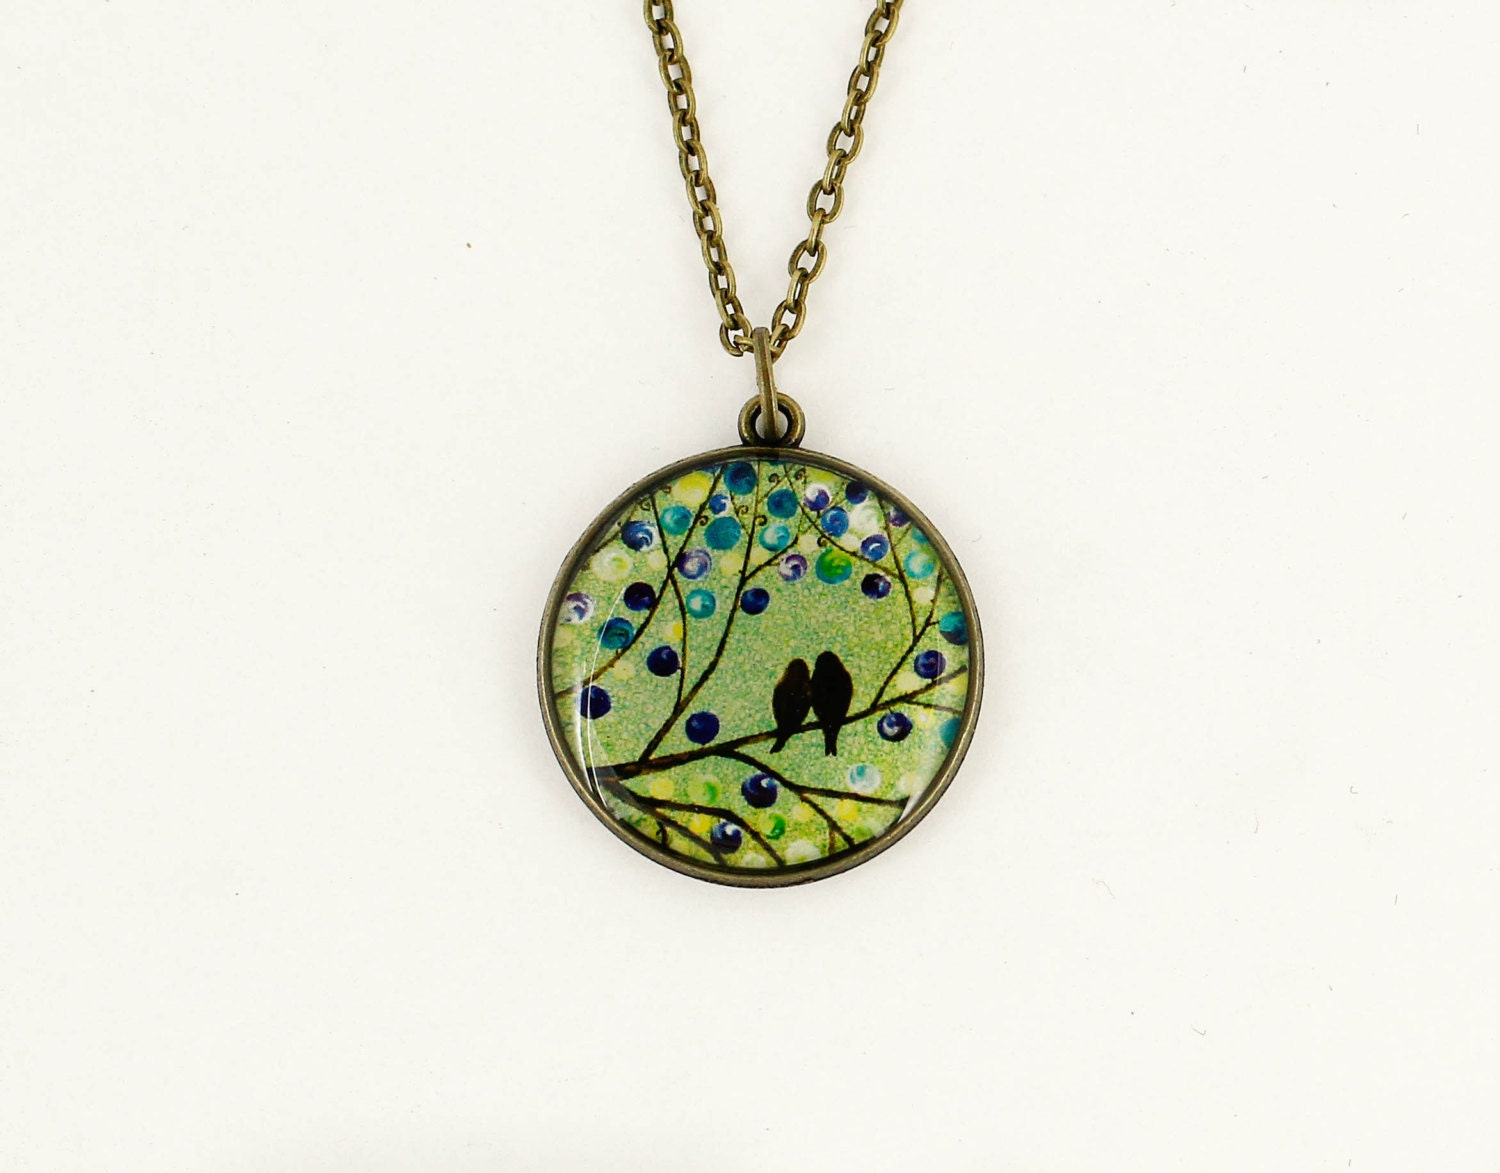 Green pendant necklace Mom jewelry Mothers day gift for wife anniversary gifts for girlfriend gift for best friend gifts for sister gift her